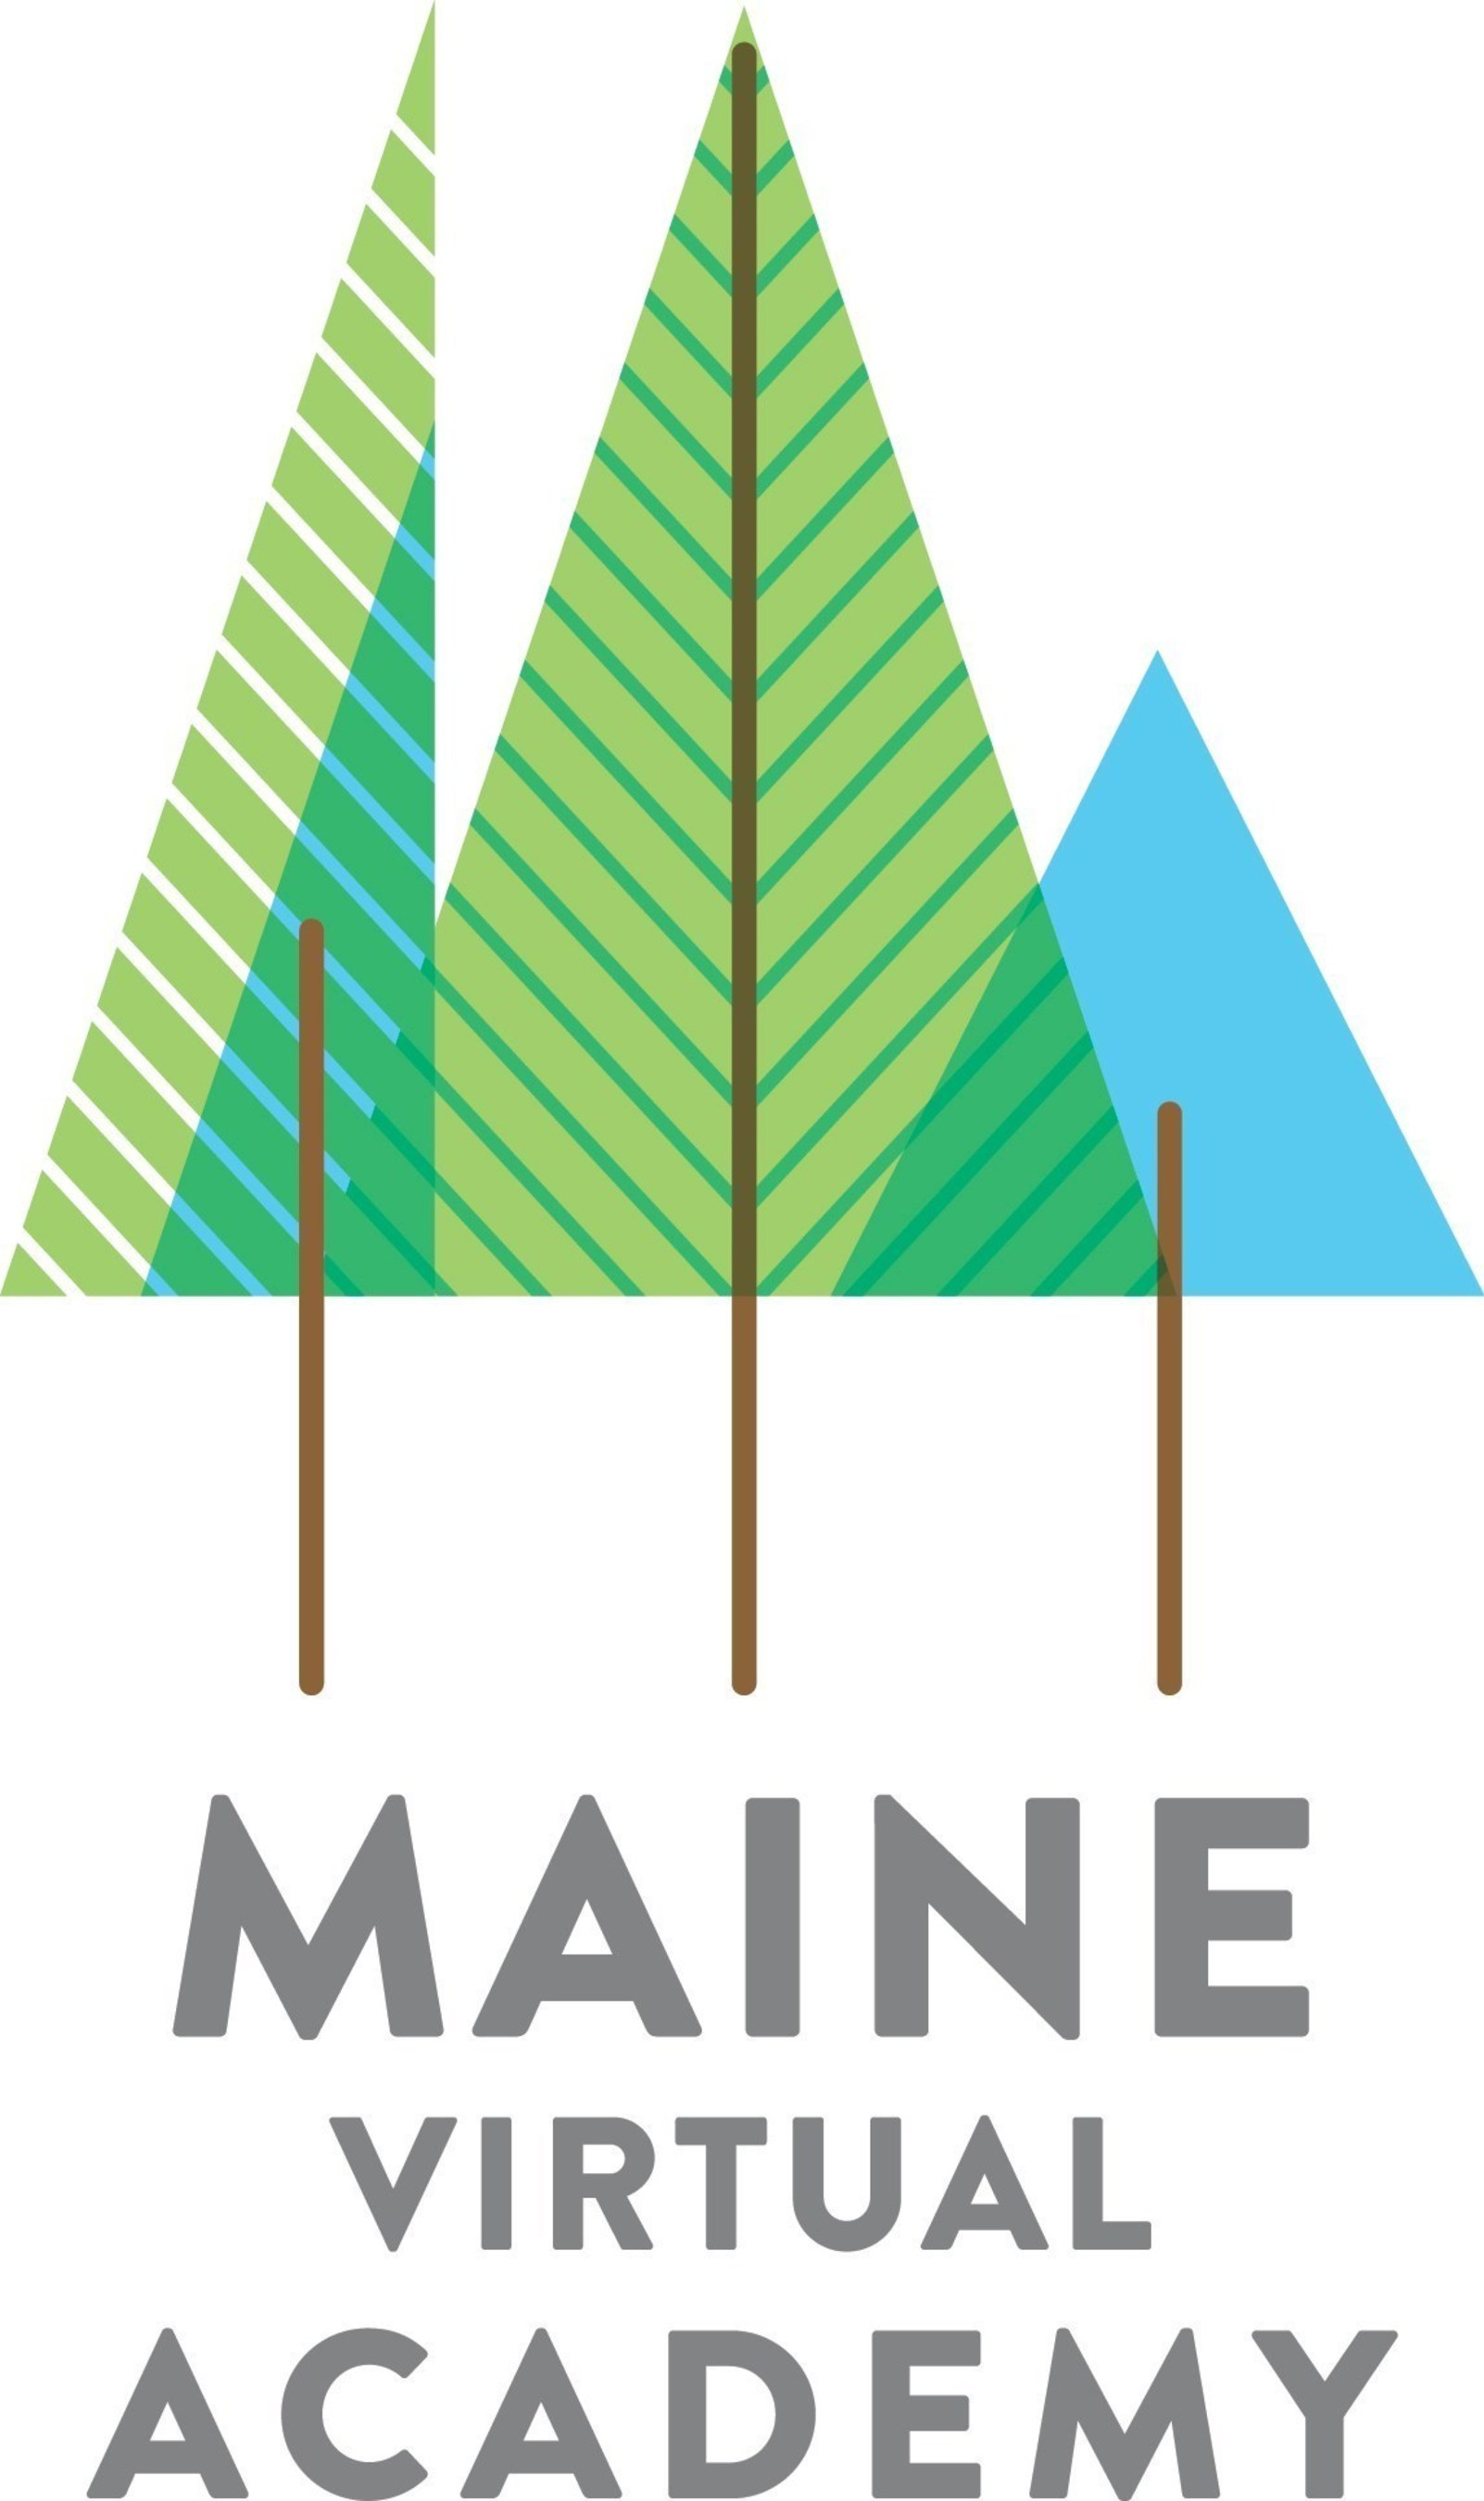 Maine Virtual Academy Welcomes Families to Enroll for 2016-2017 School Year